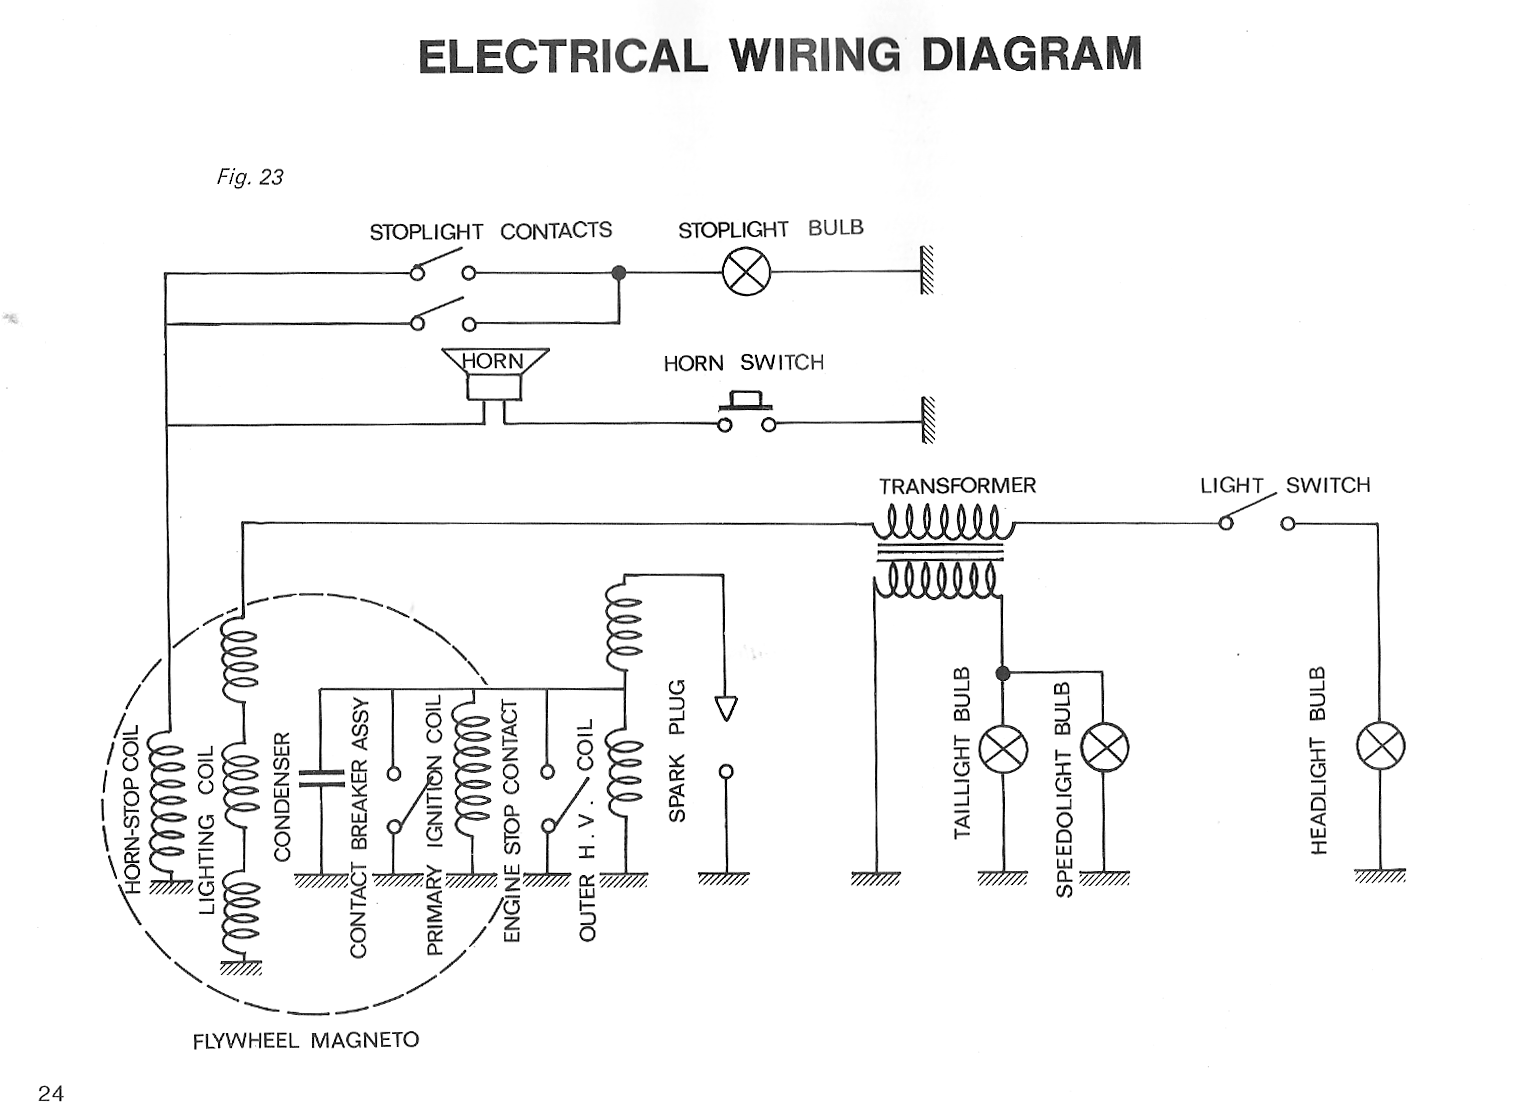 peugeot 306 wiring diagram manual peugeot jetforce wiring diagram peugeot wiring diagrams - moped wiki #11